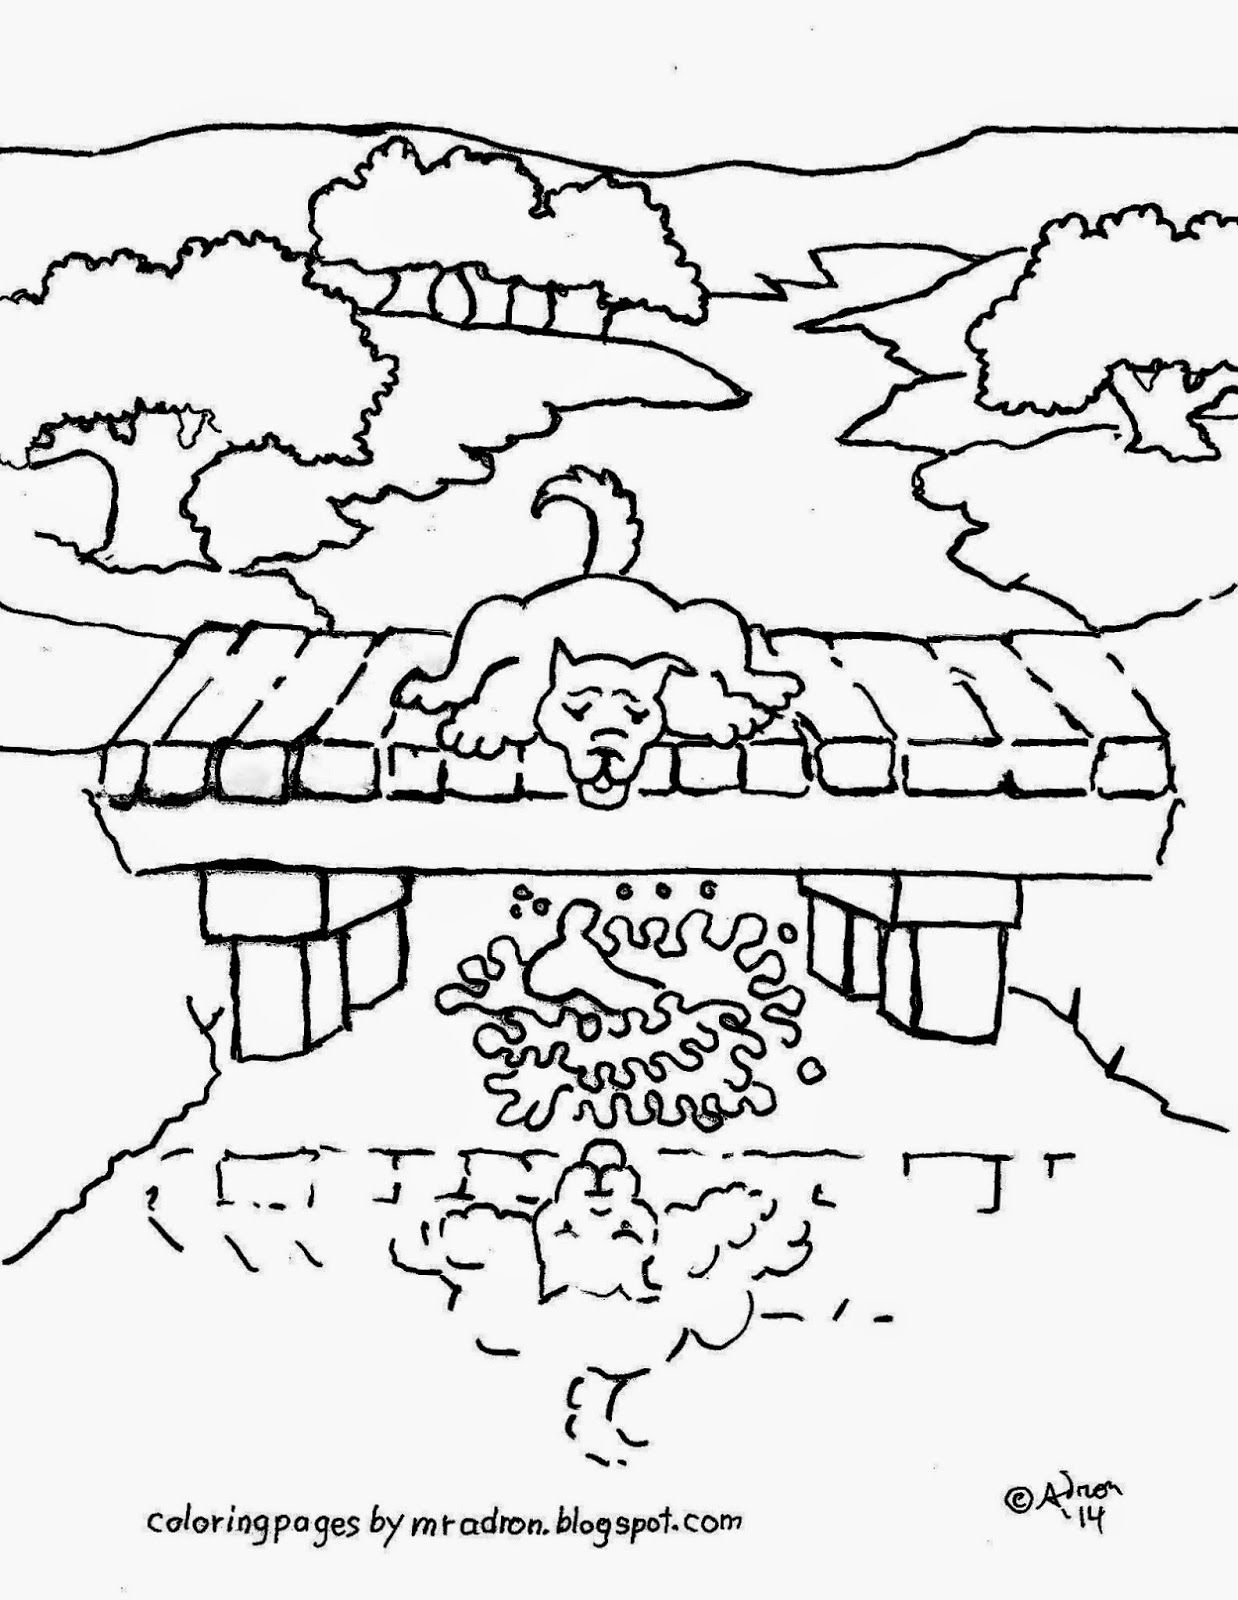 Aesop S Fable Coloring Page Of The Dog Who Drops His Bone See More At My Blog Http Coloringpagesbymradron Blogspot Com